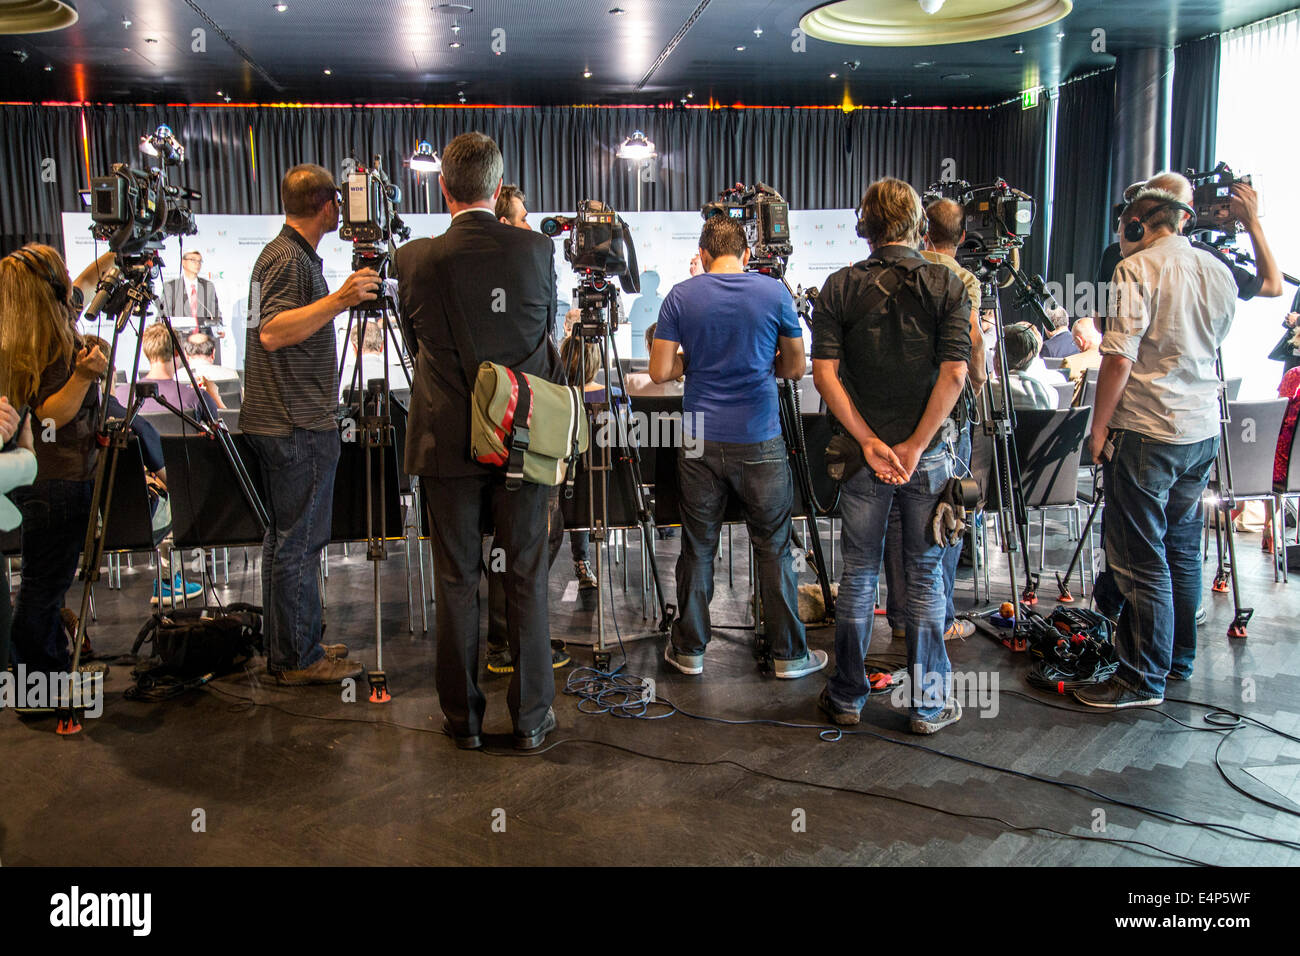 Media, camera, TV cameras on tripods, at a press conference, - Stock Image